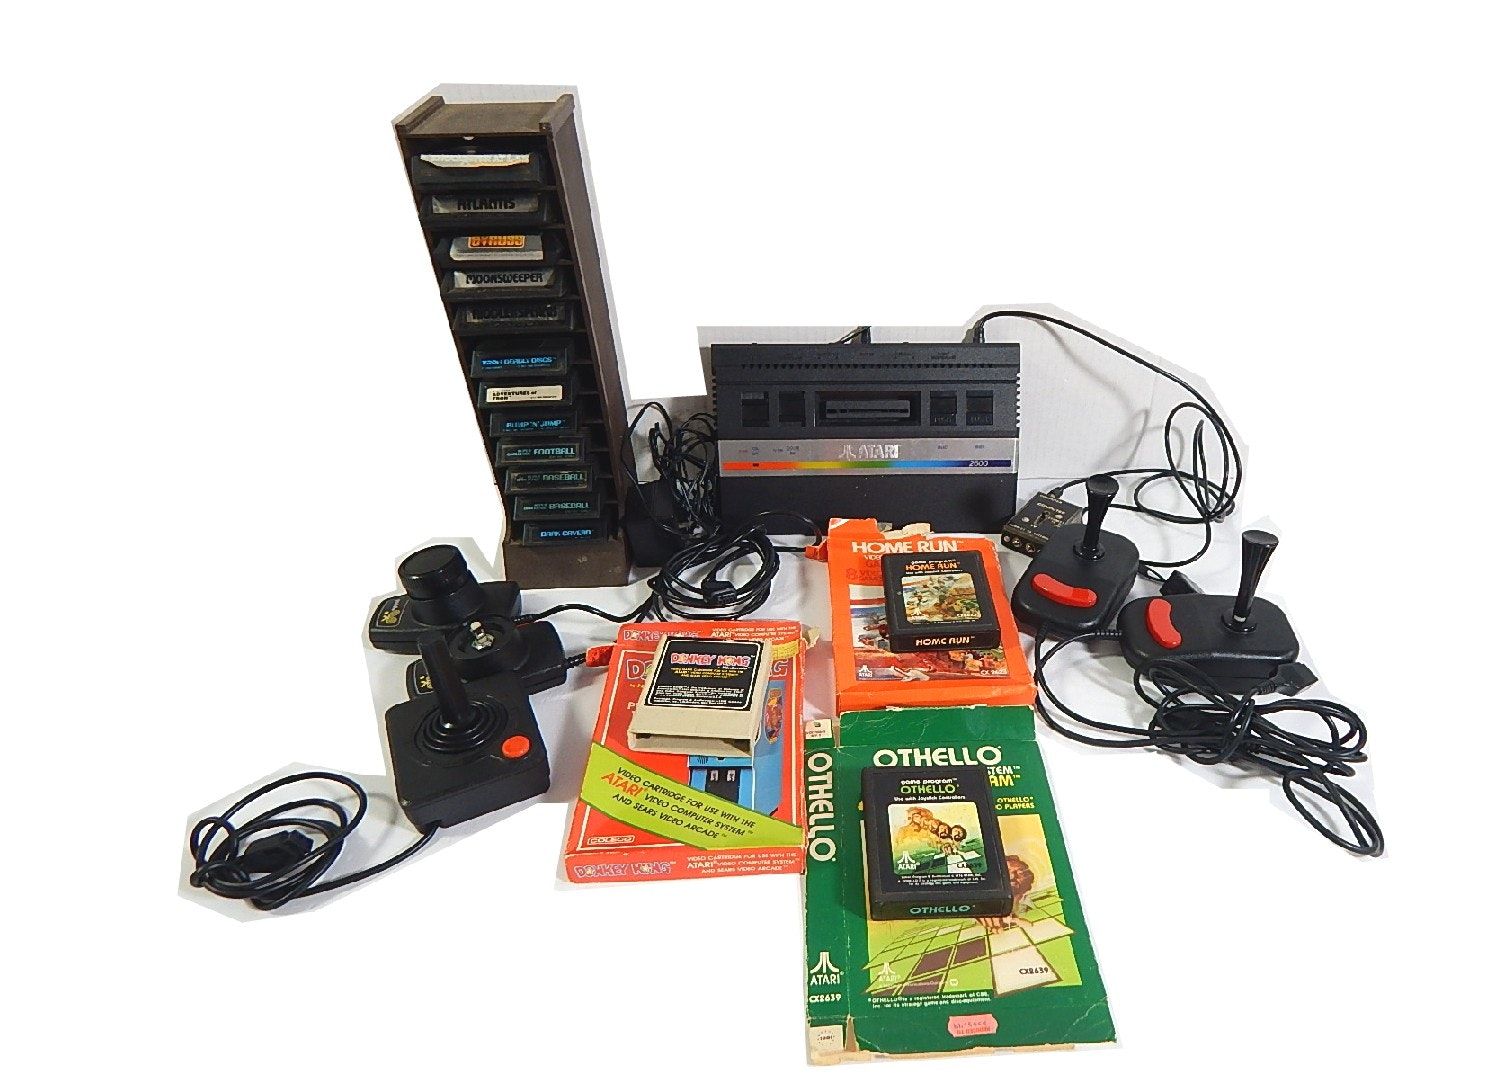 Atari 2600 Game Console, Games, Controllers